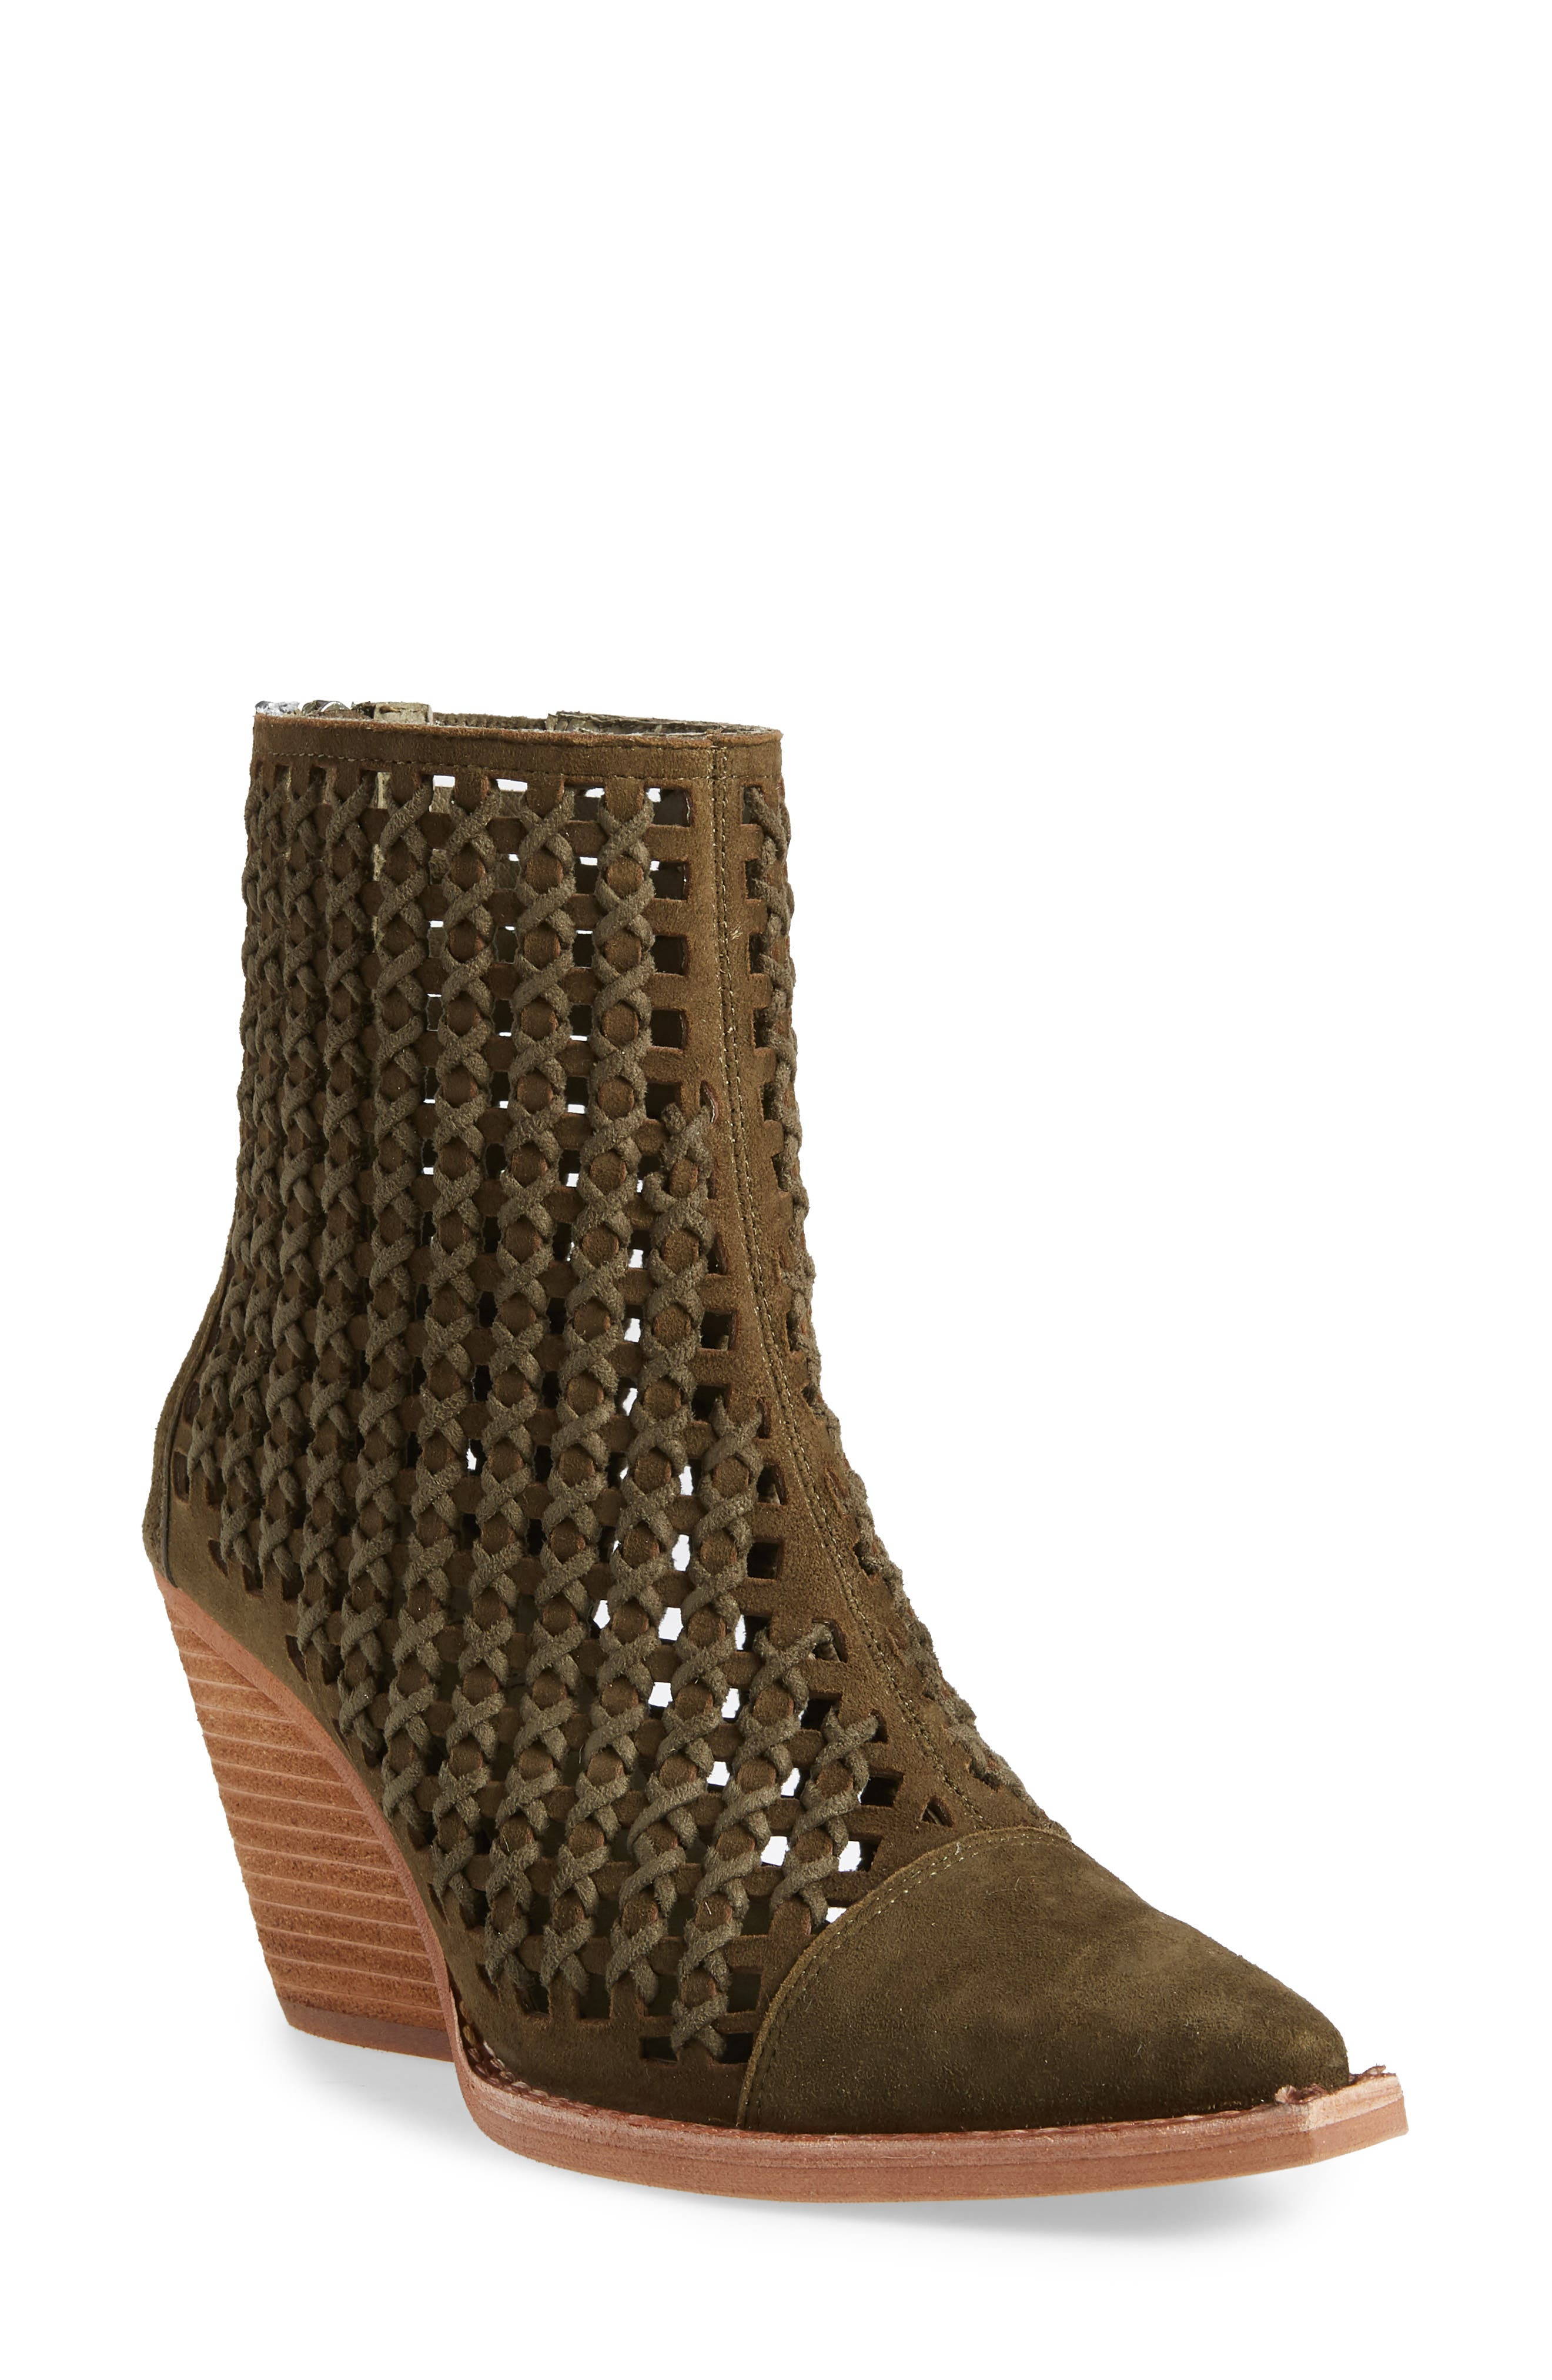 Oakwood Perforated Bootie,                             Main thumbnail 1, color,                             KHAKI SUEDE